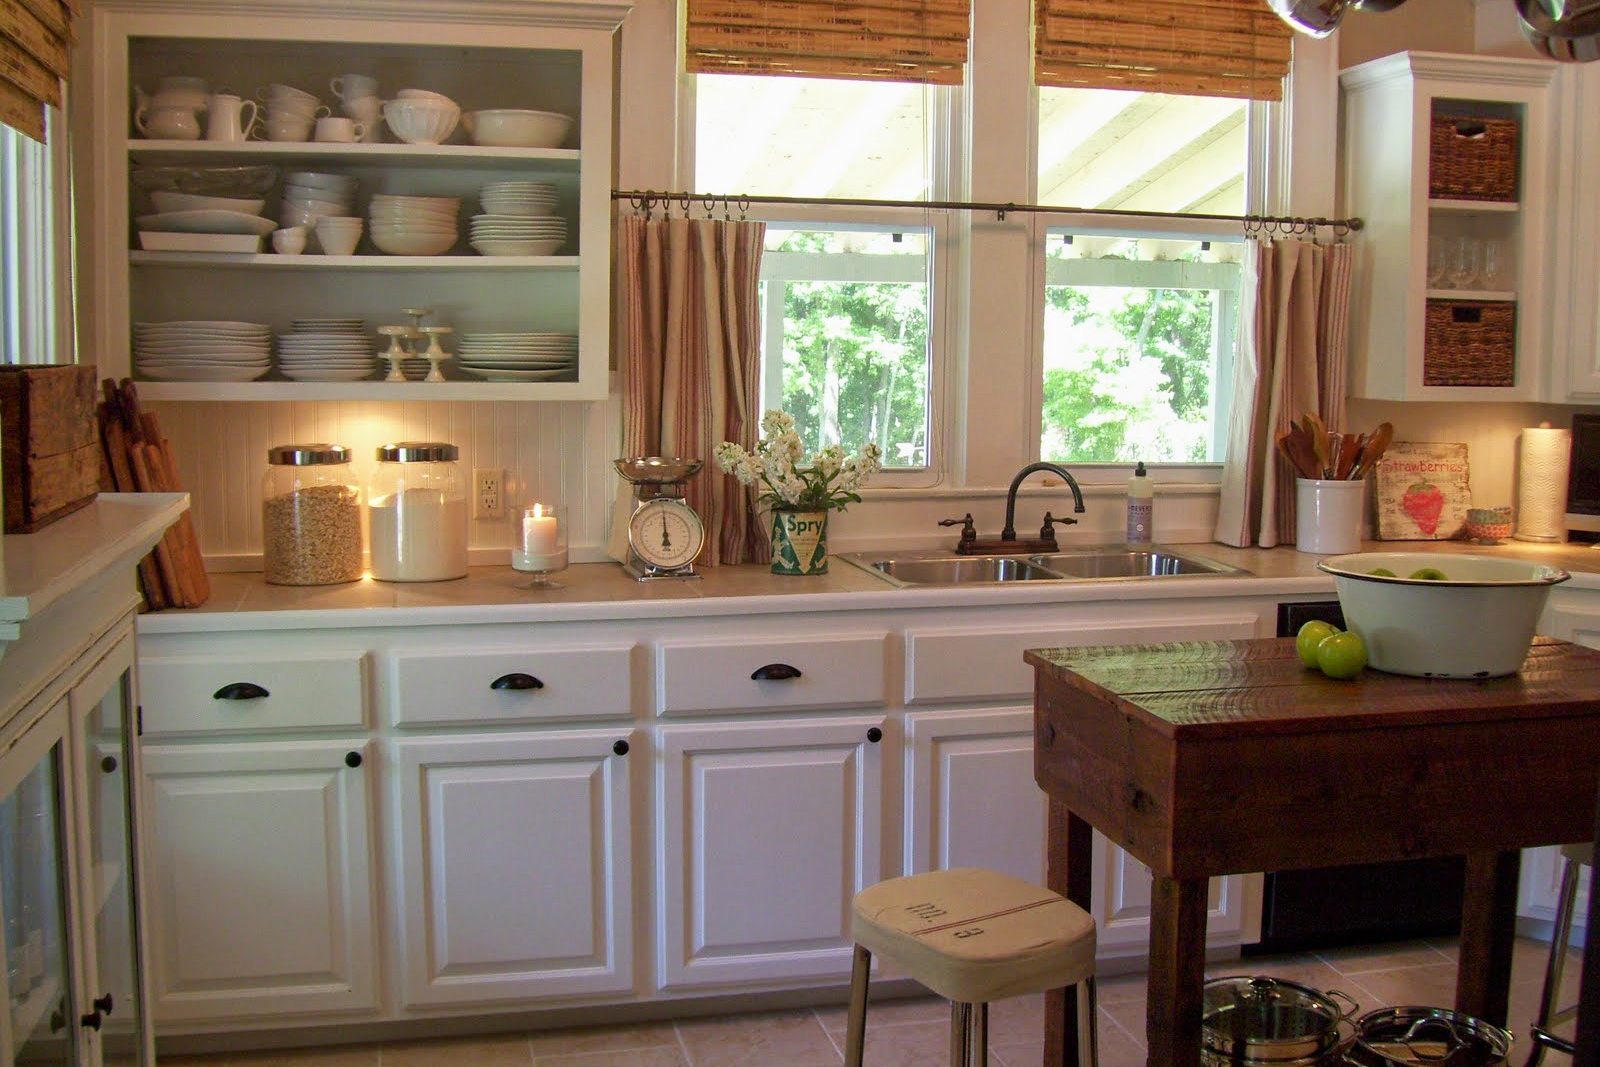 Remodel Design Diy Kitchen Remodel Budget Kitchen Remodel